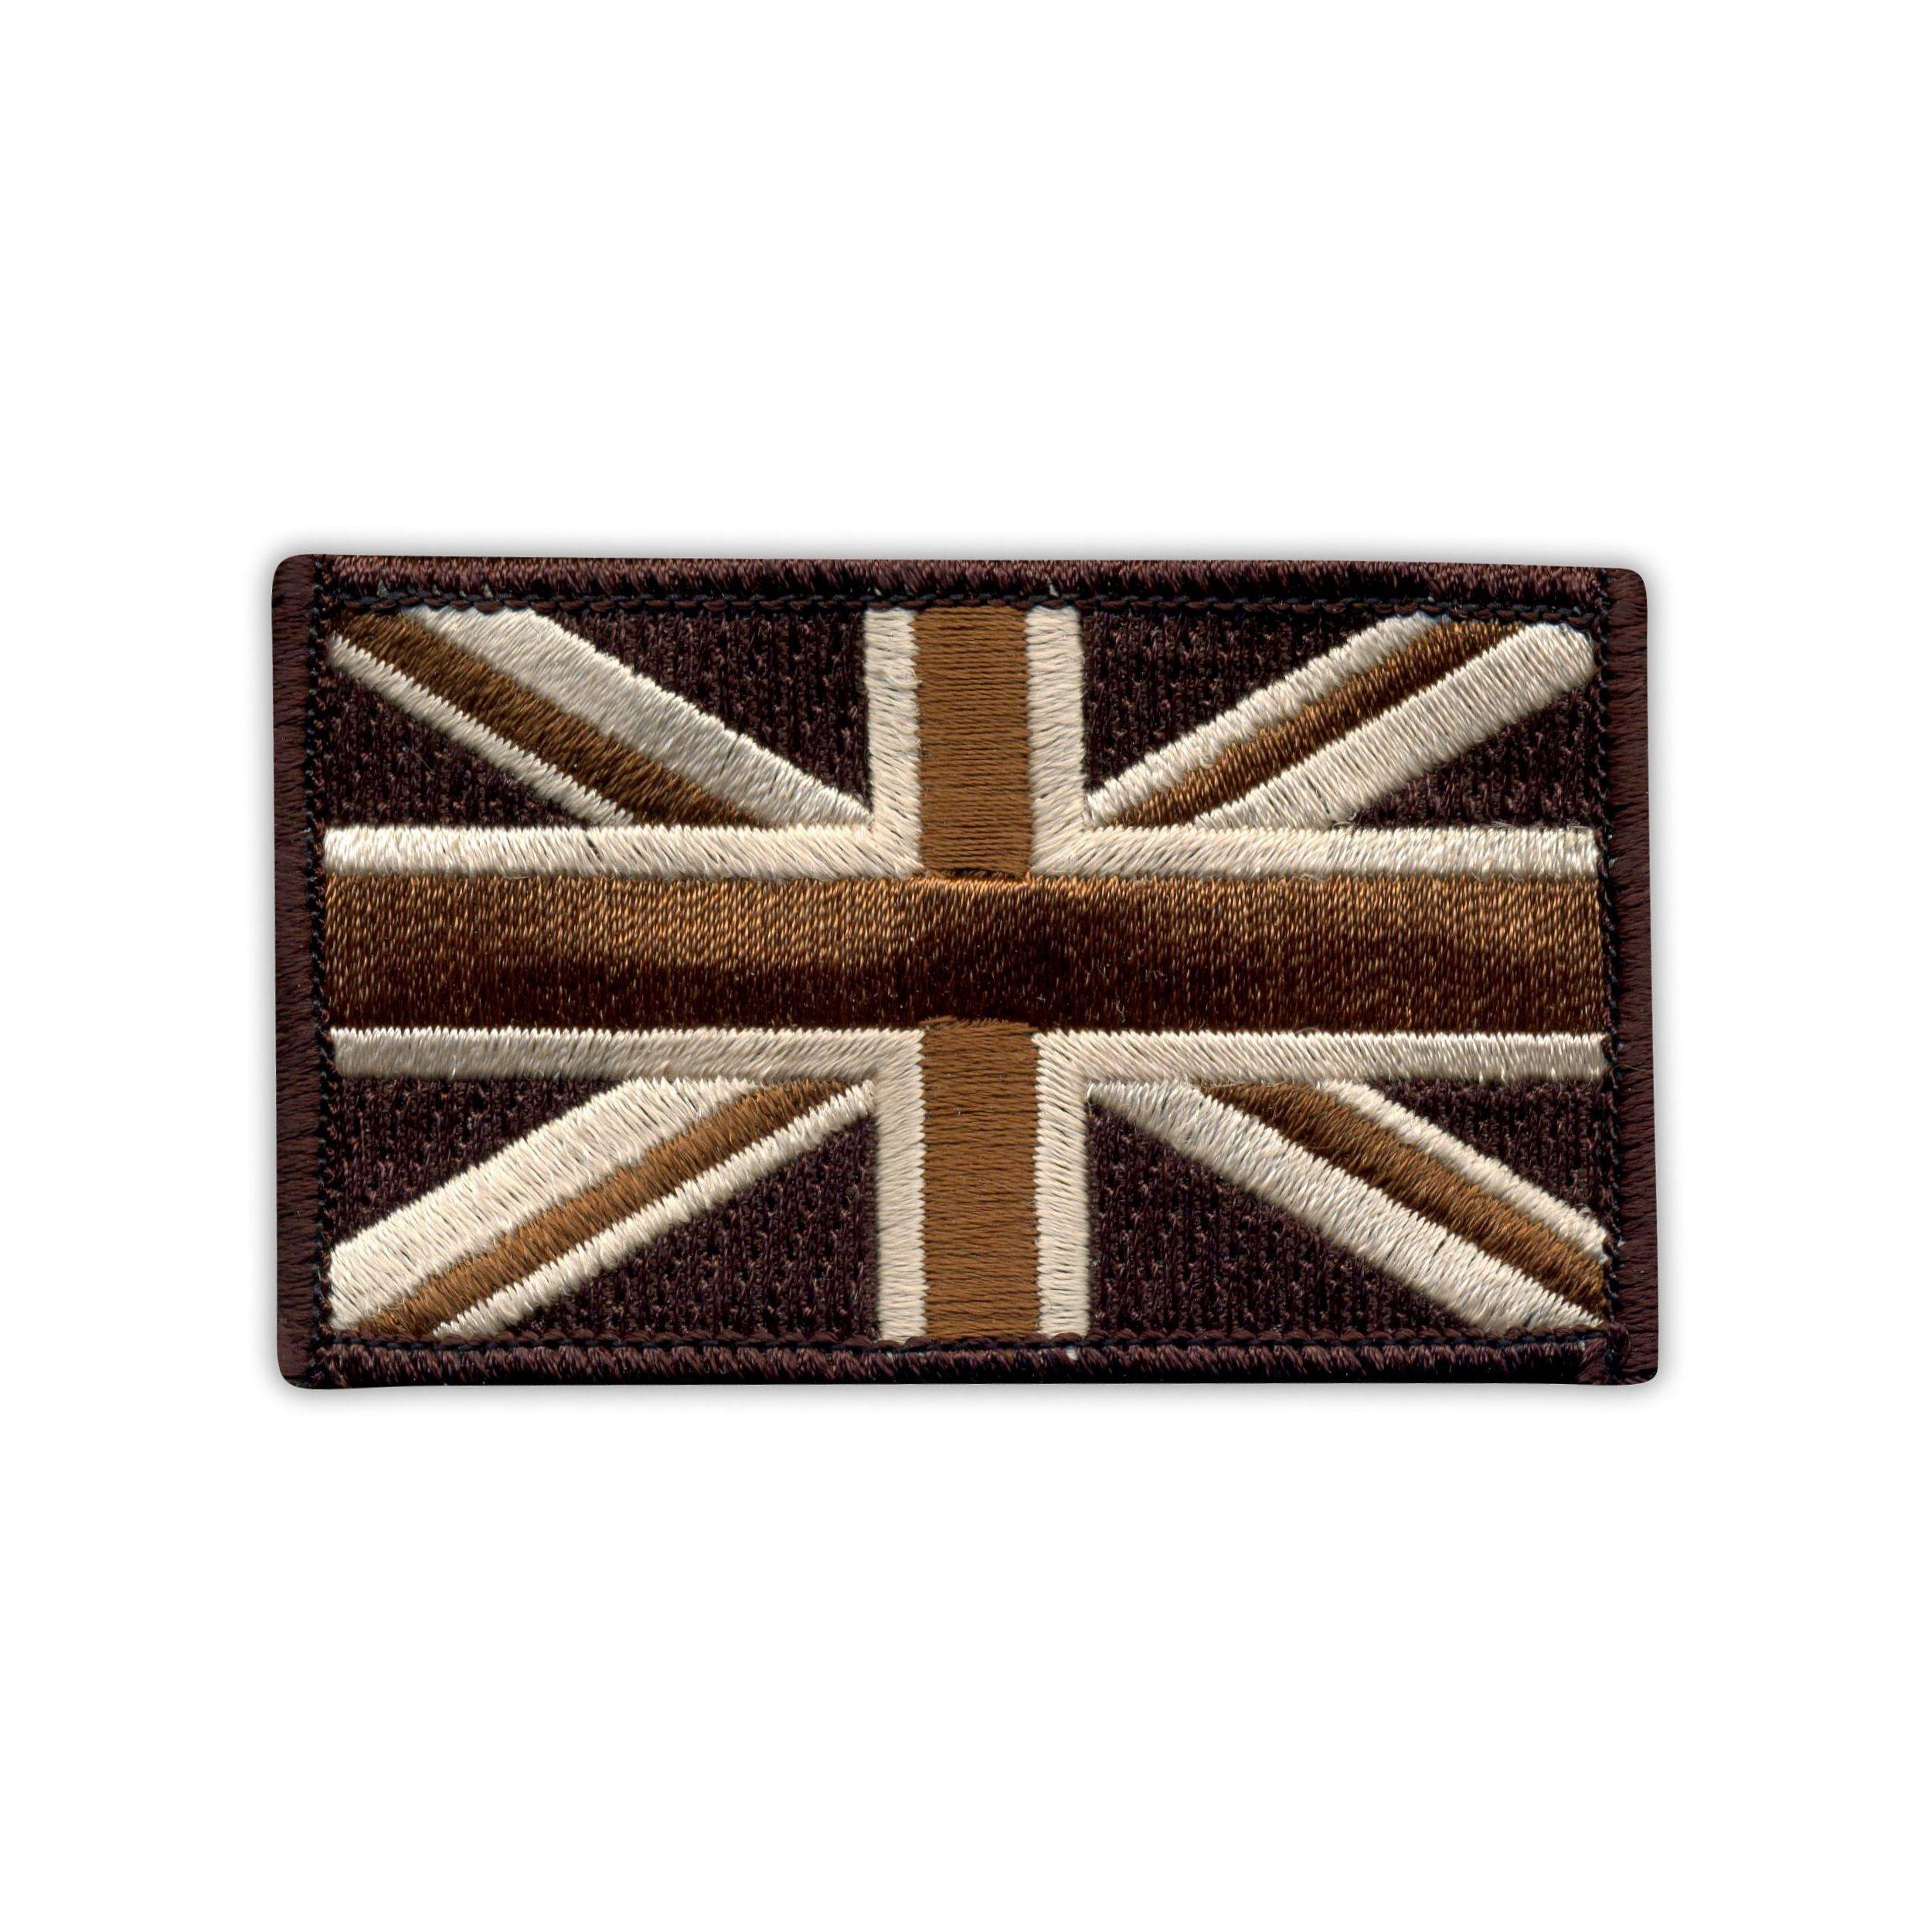 Military Flag of United Kingdom 7.5 x 4.5 cm MTP - Embroidered PATCH//BADGE